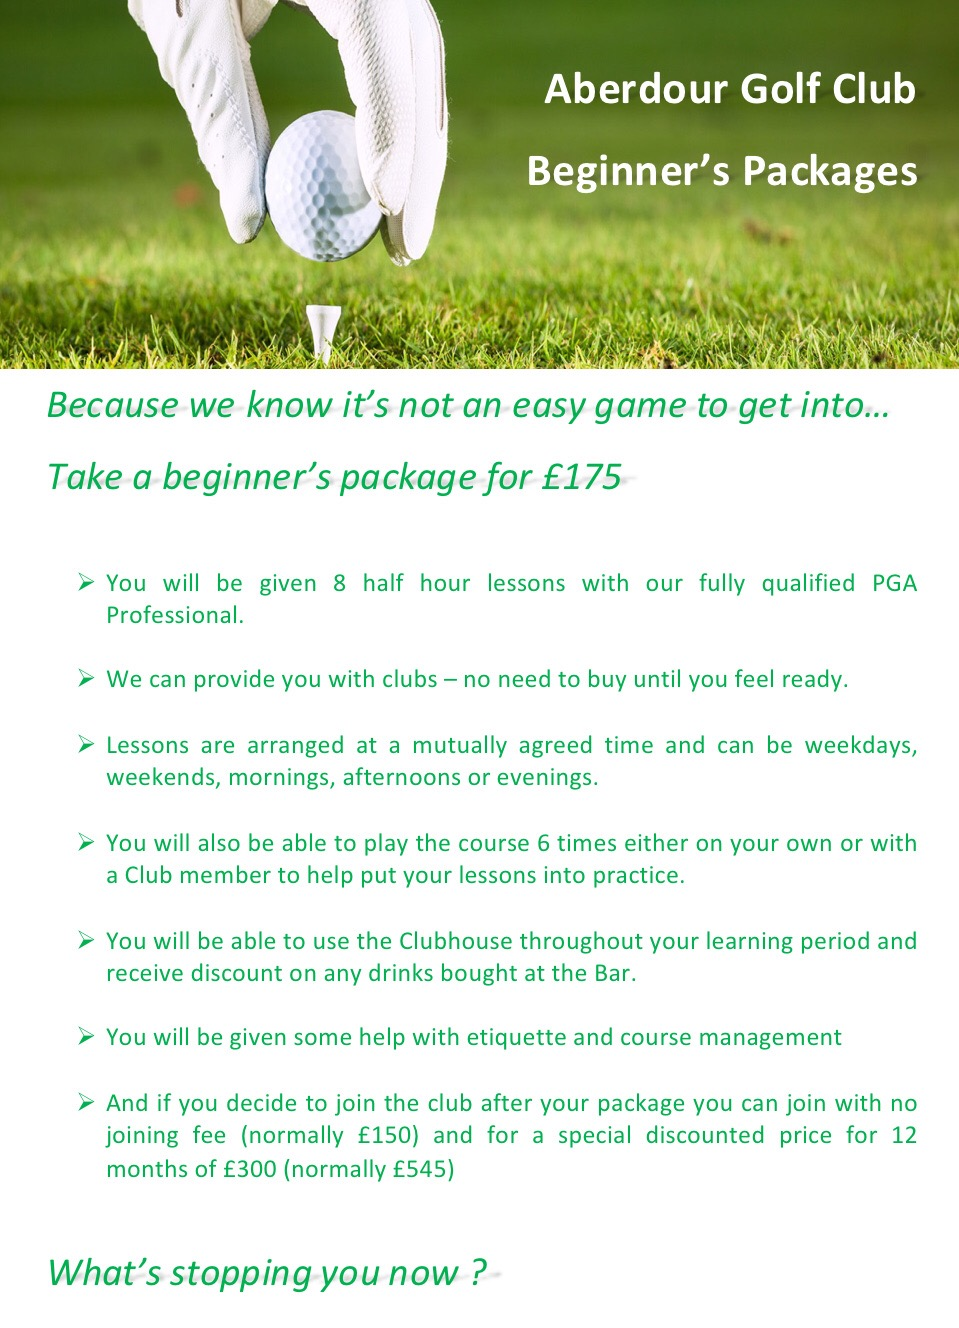 aberdour golf club business plan